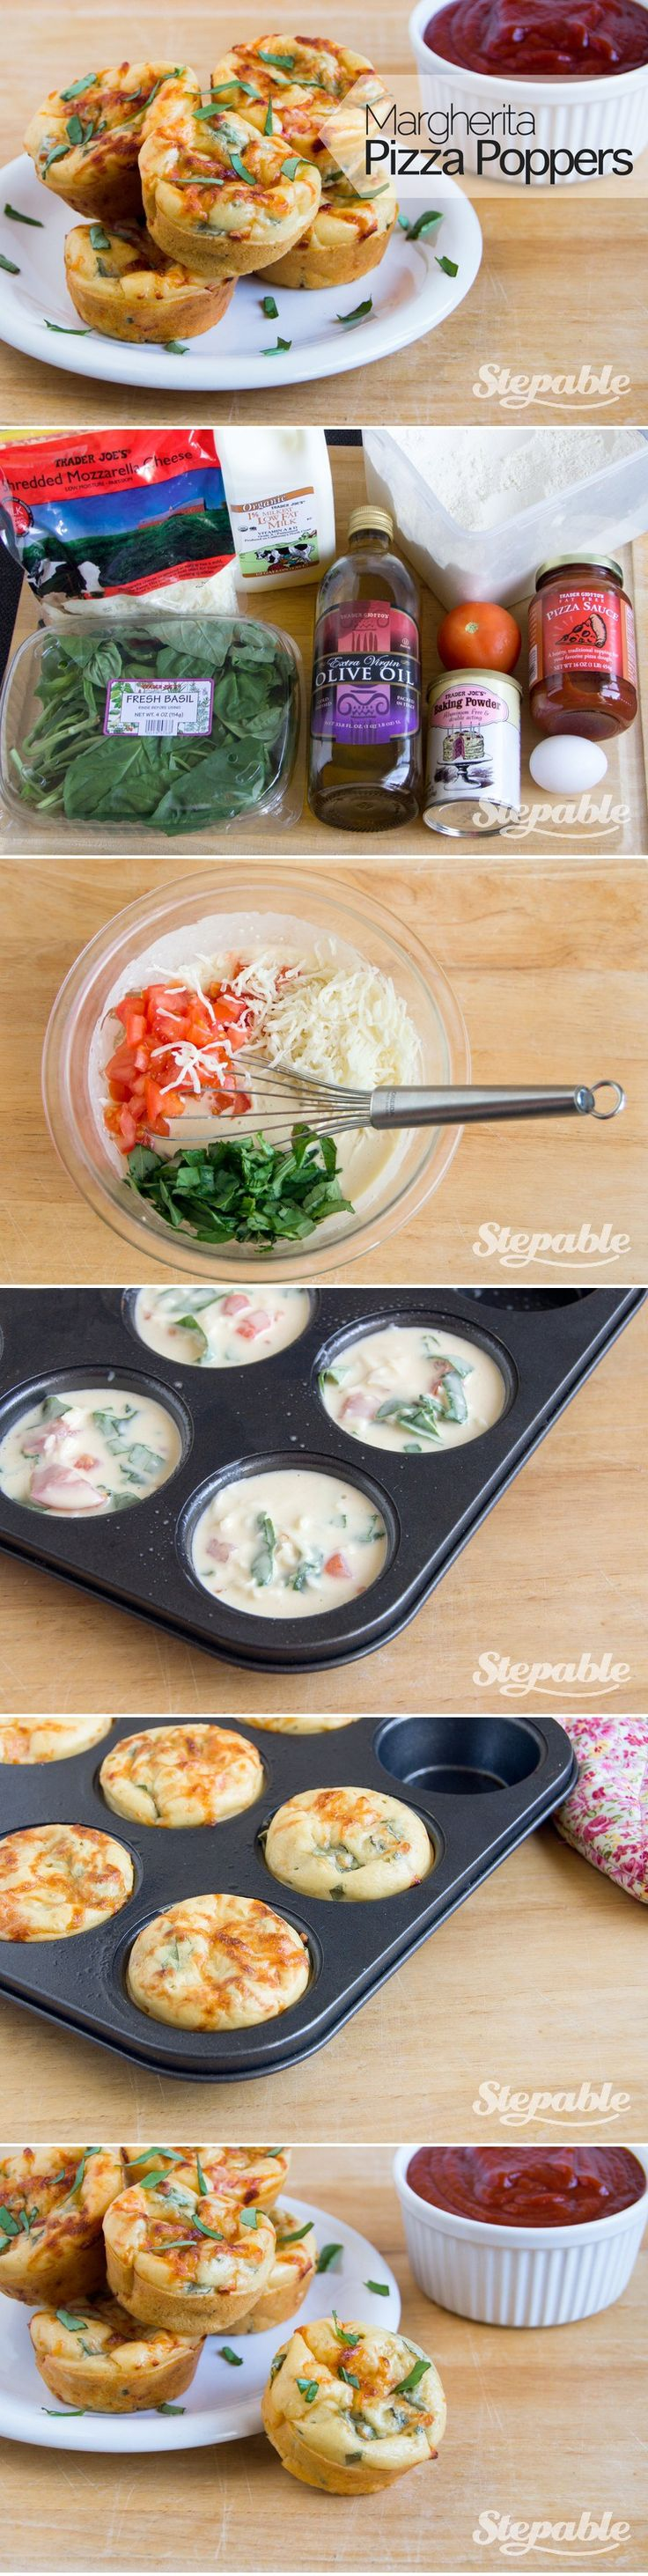 Margherita Pizza Poppers @Stepable #recipes